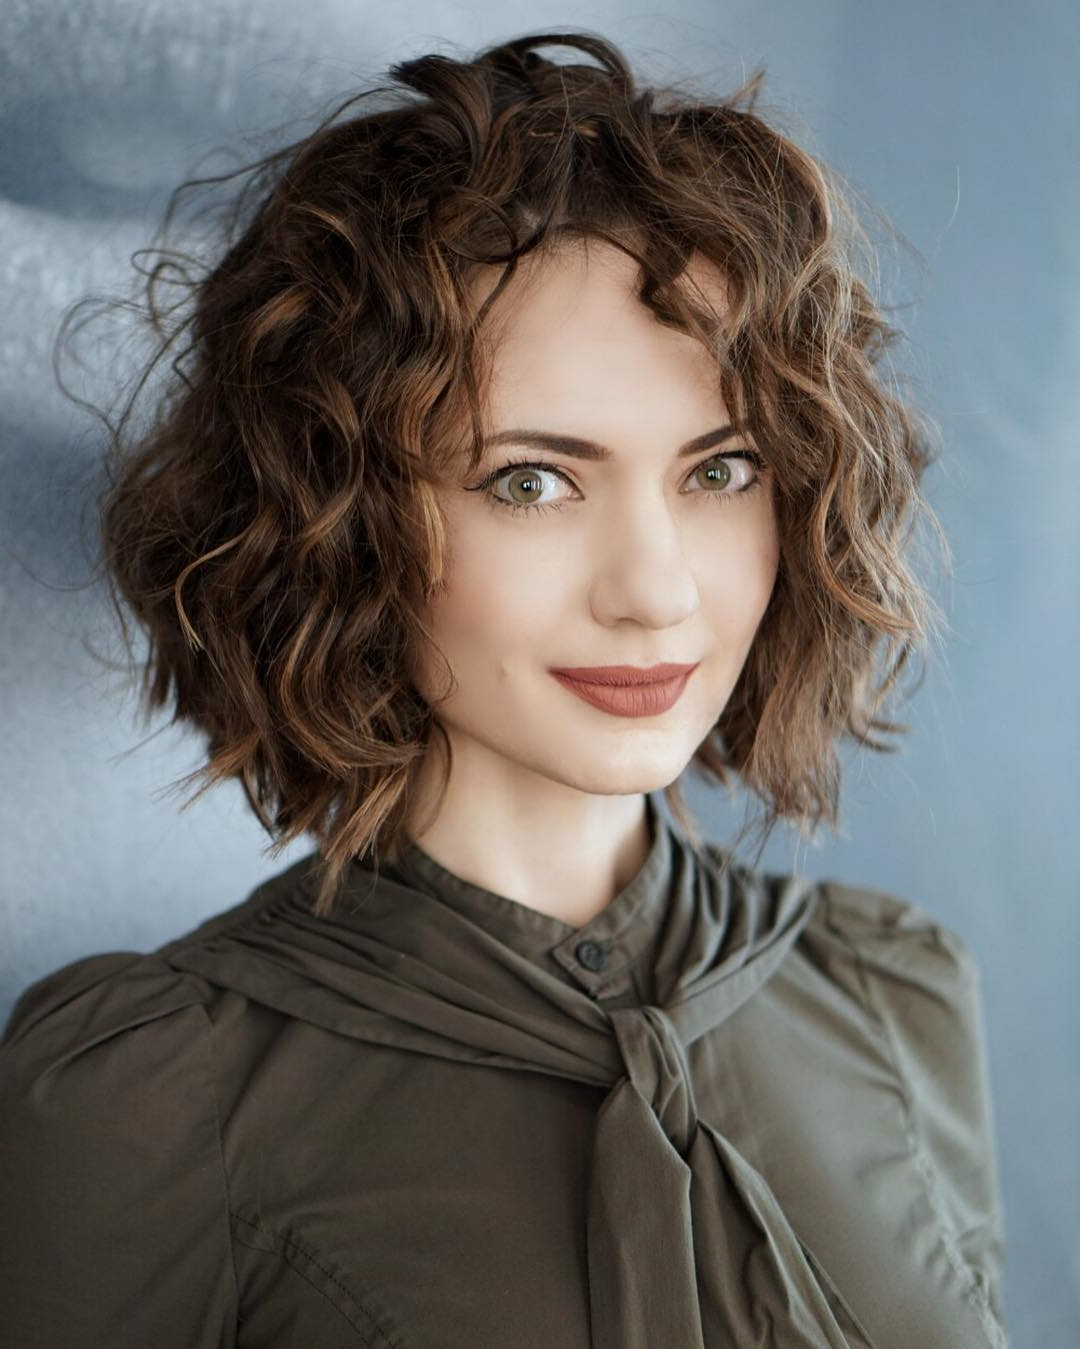 38 Super Cute Ways To Curl Your Bob – Popular Haircuts For Women 2017 For Cute Curly Bob Hairstyles (View 7 of 20)